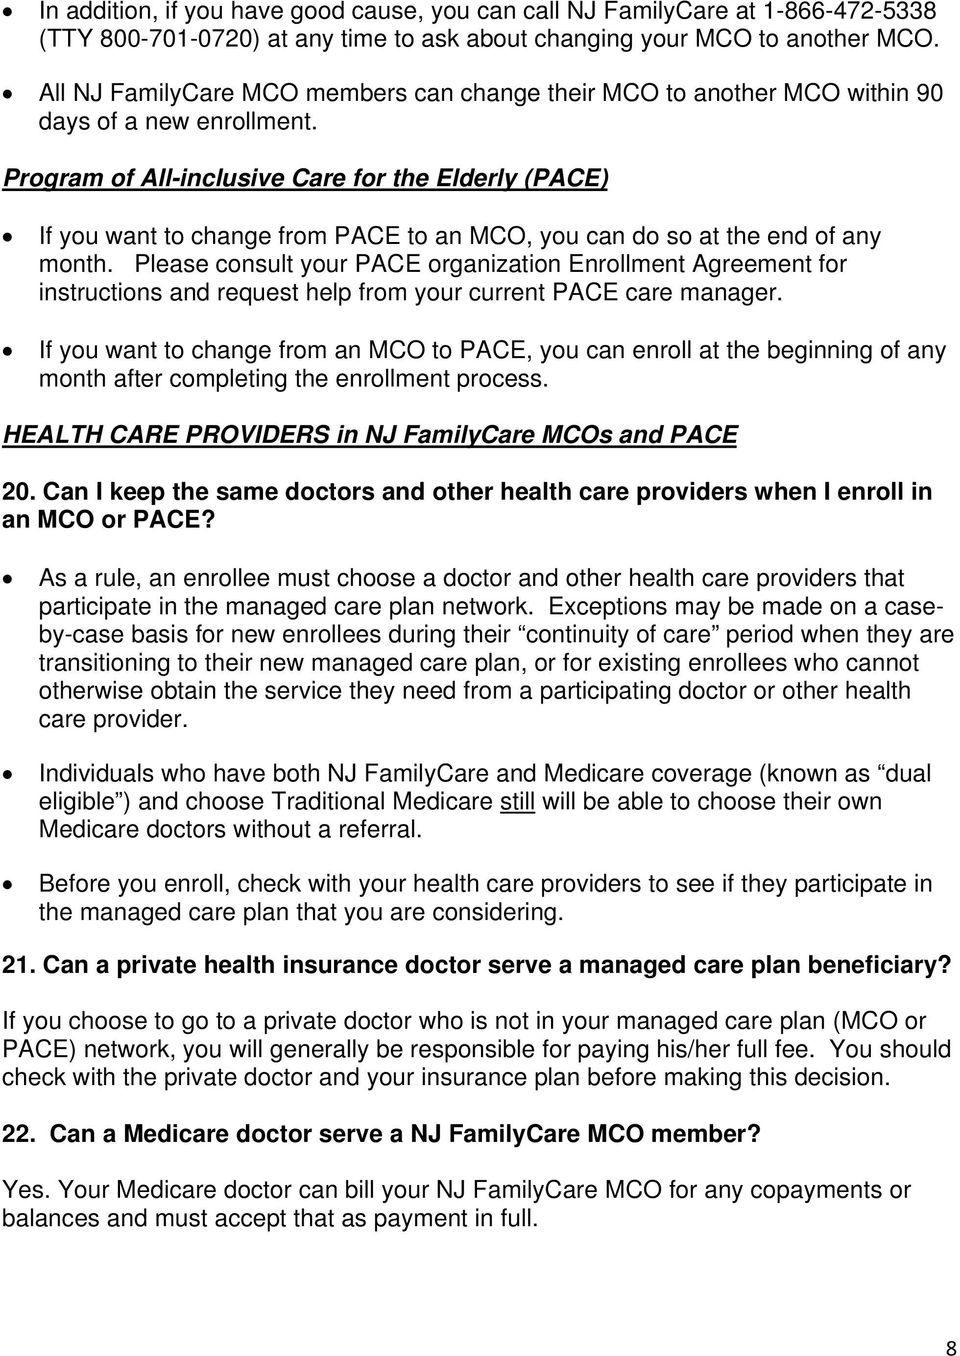 Program of All-inclusive Care for the Elderly (PACE) If you want to change from PACE to an MCO, you can do so at the end of any month.